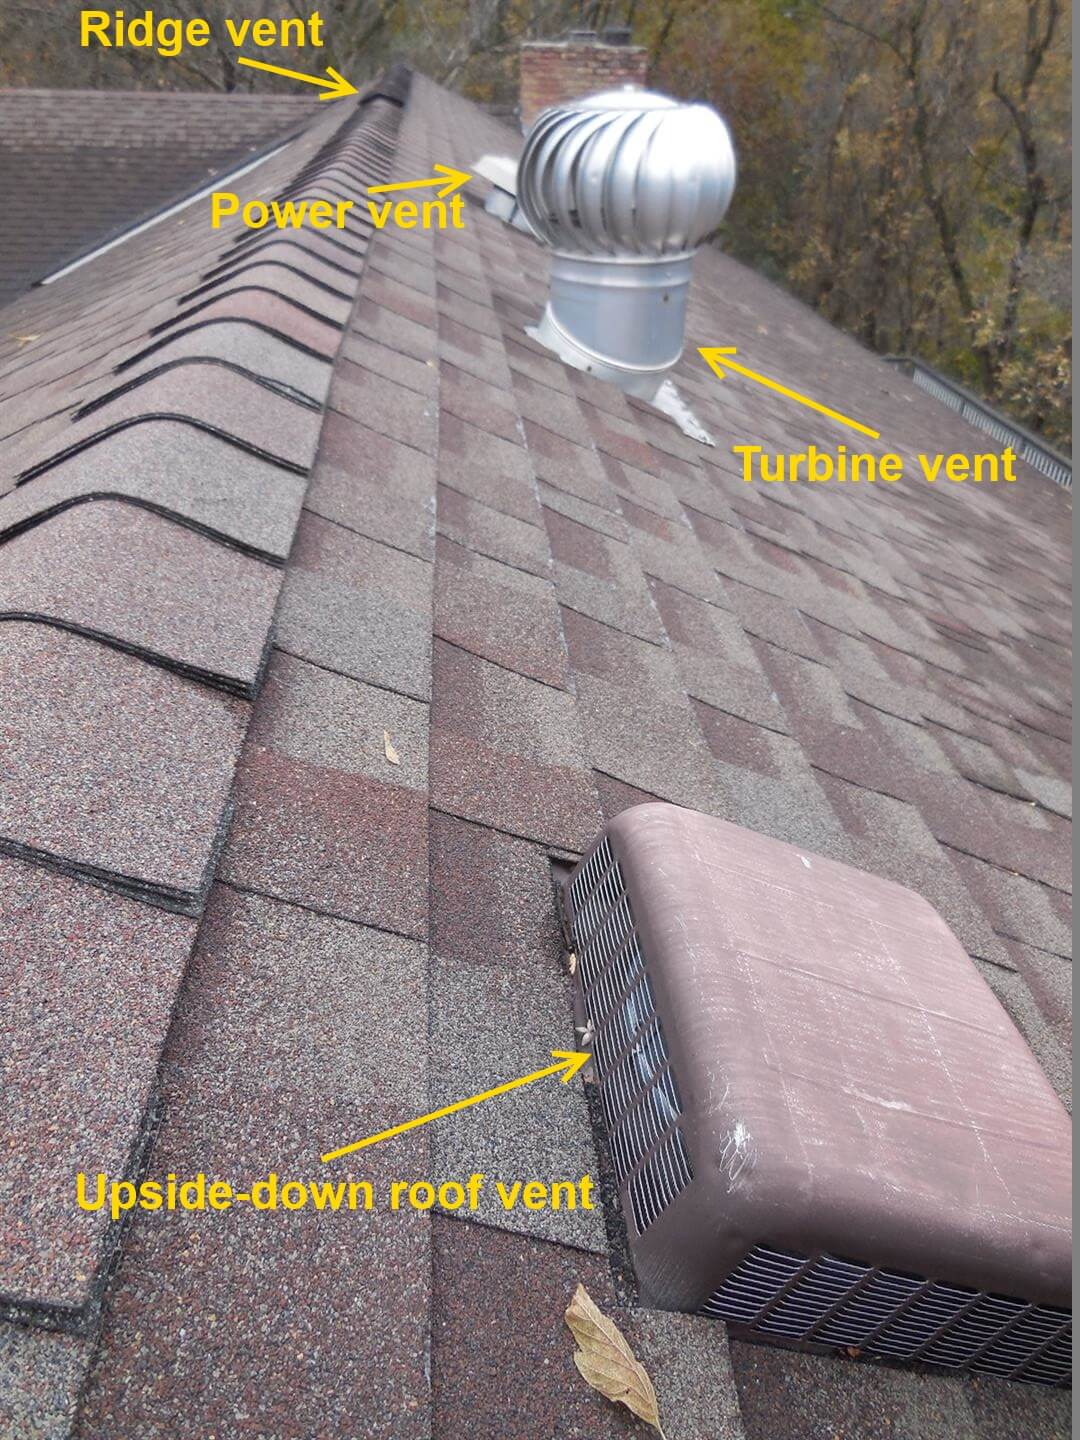 House Roof Ventilation : Roof vents problems and solutions startribune